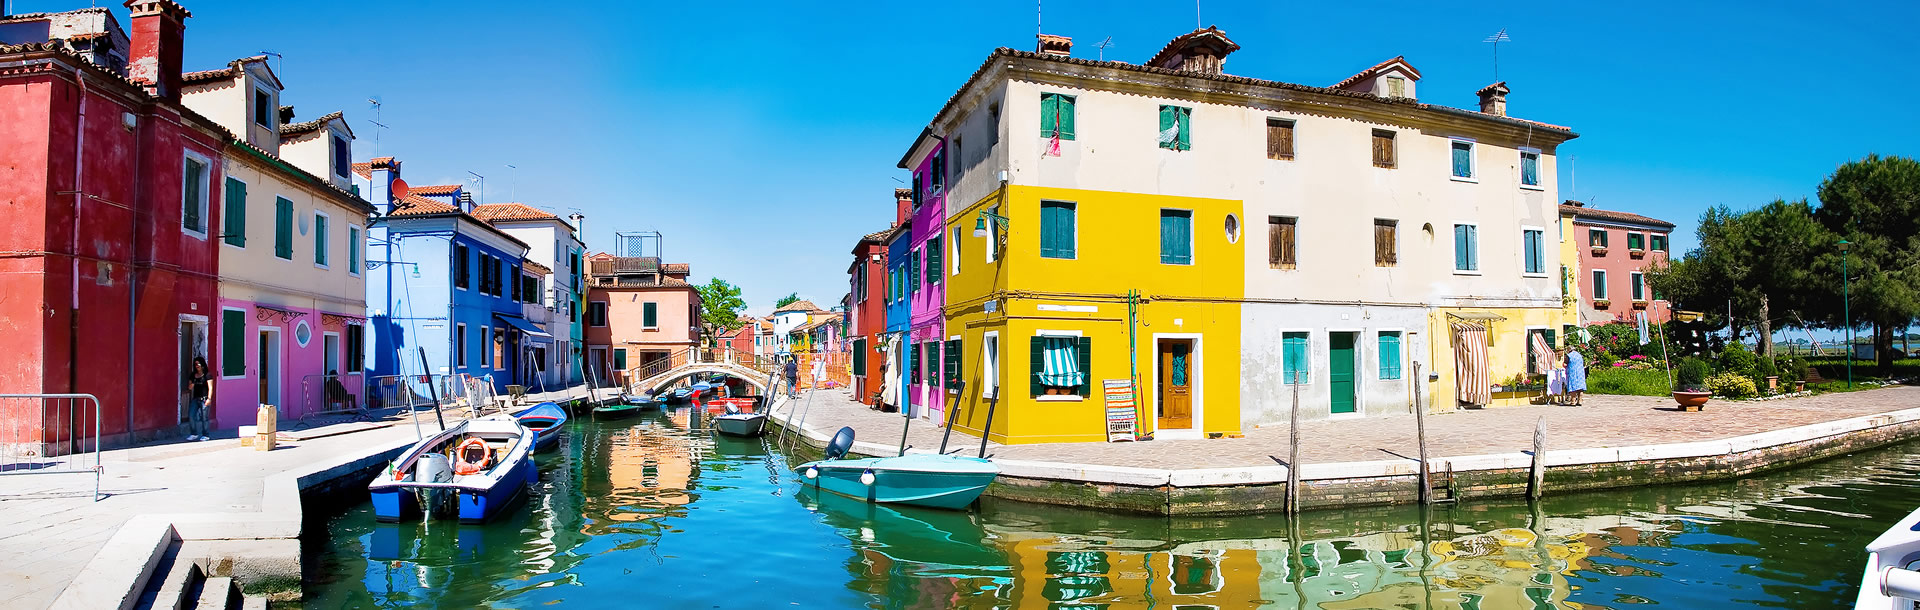 Travel Insurance Services Burano Island Near Venice